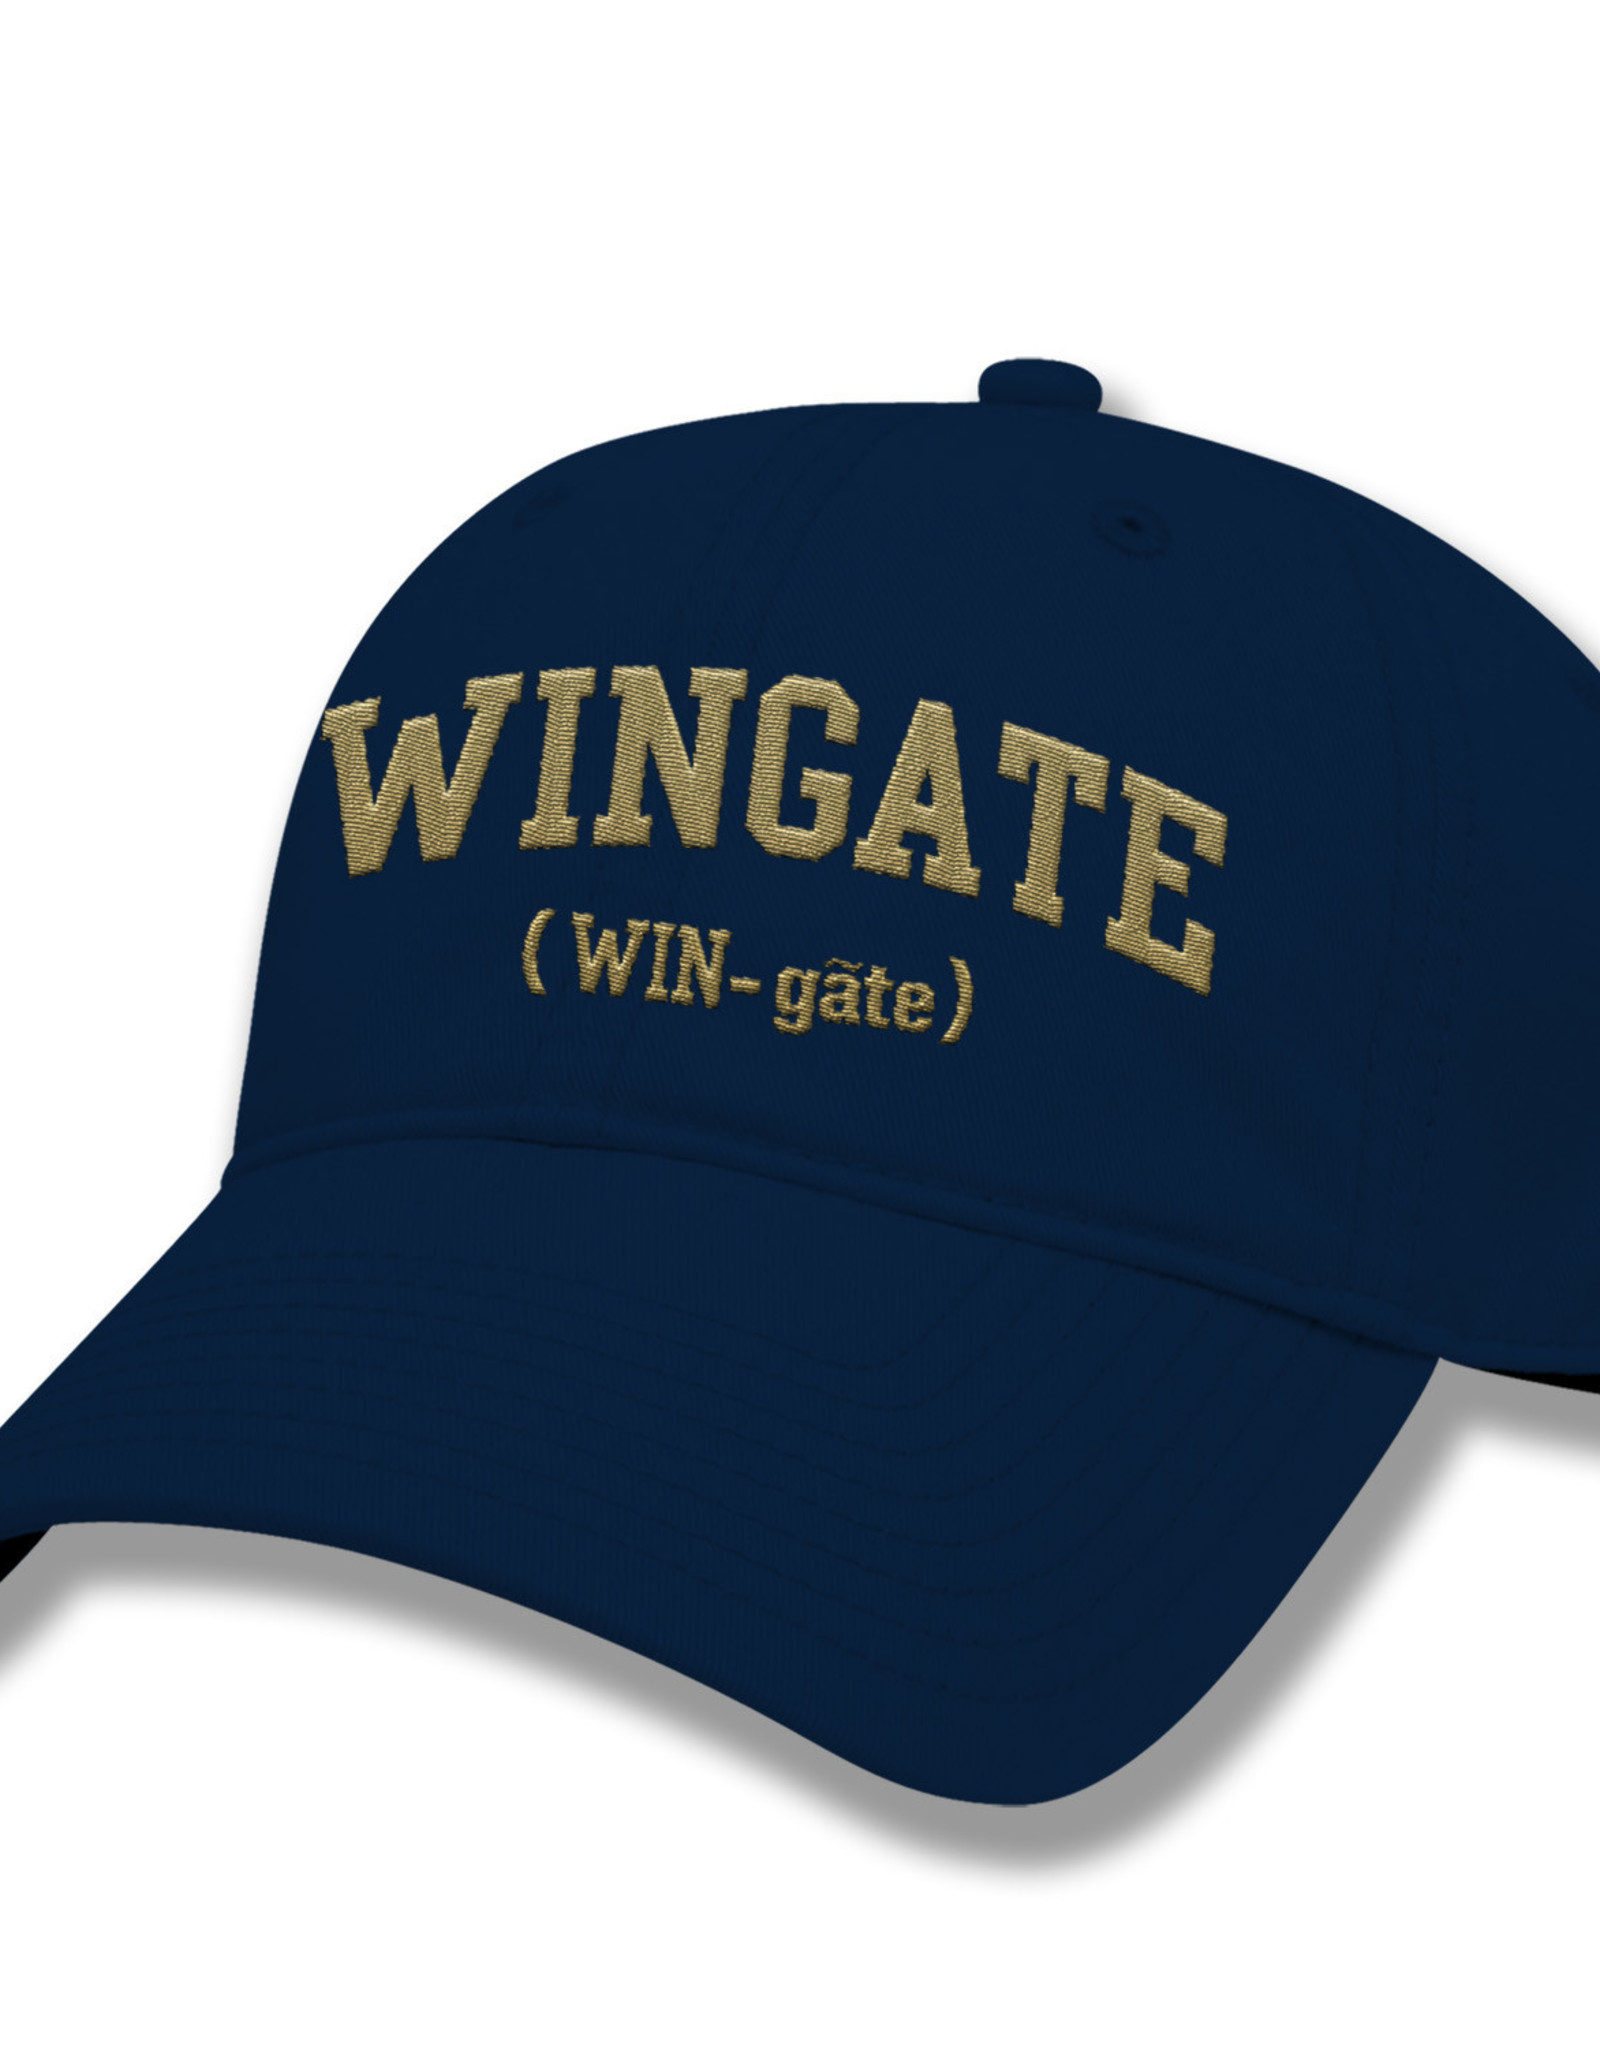 The Game Navy WIN-gate Unstructured Adjustable Hat